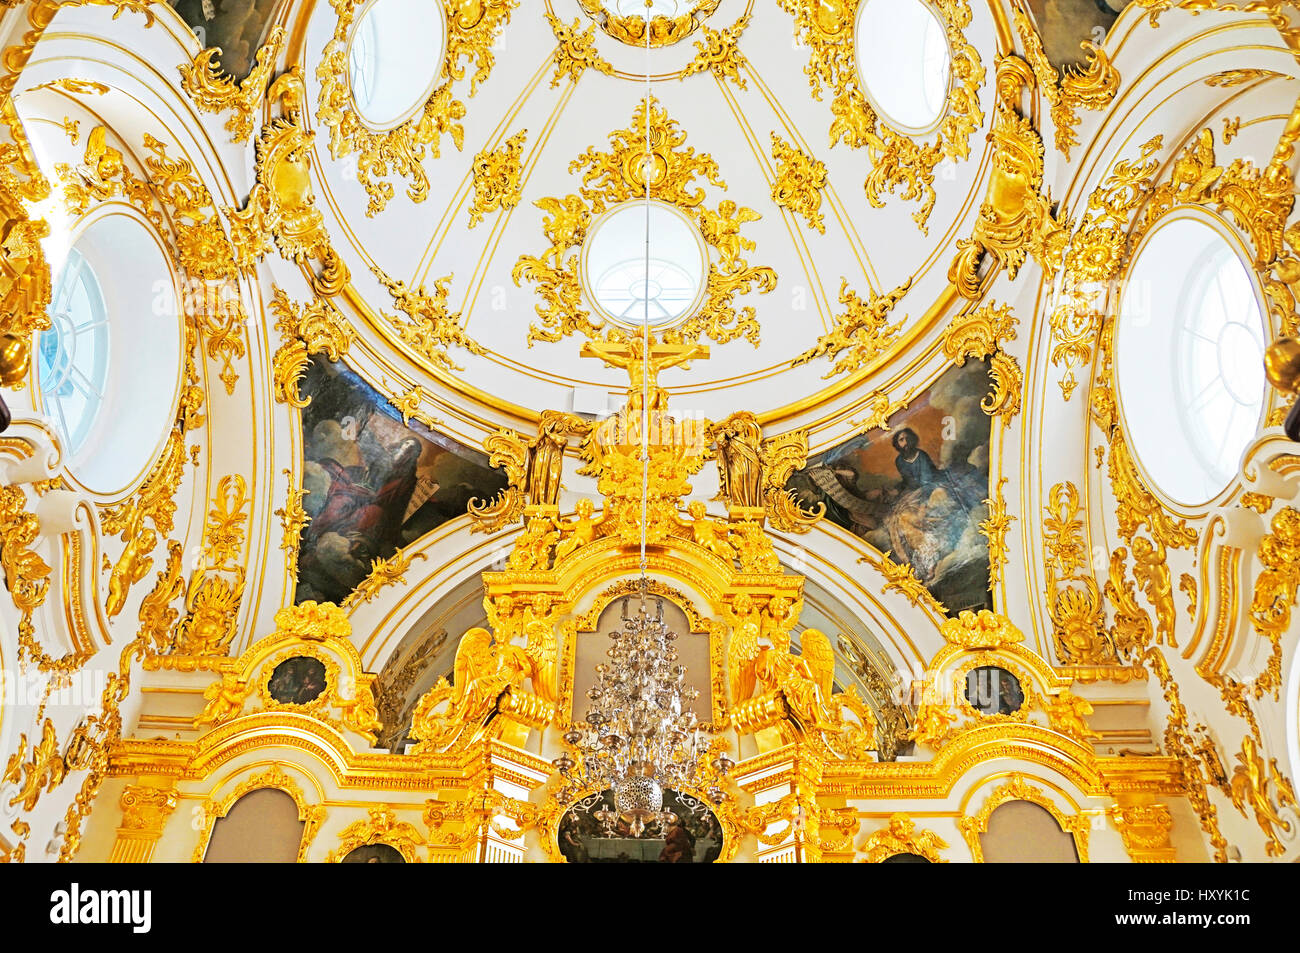 Hermitage gold gilded room restored in 1960s. - Stock Image